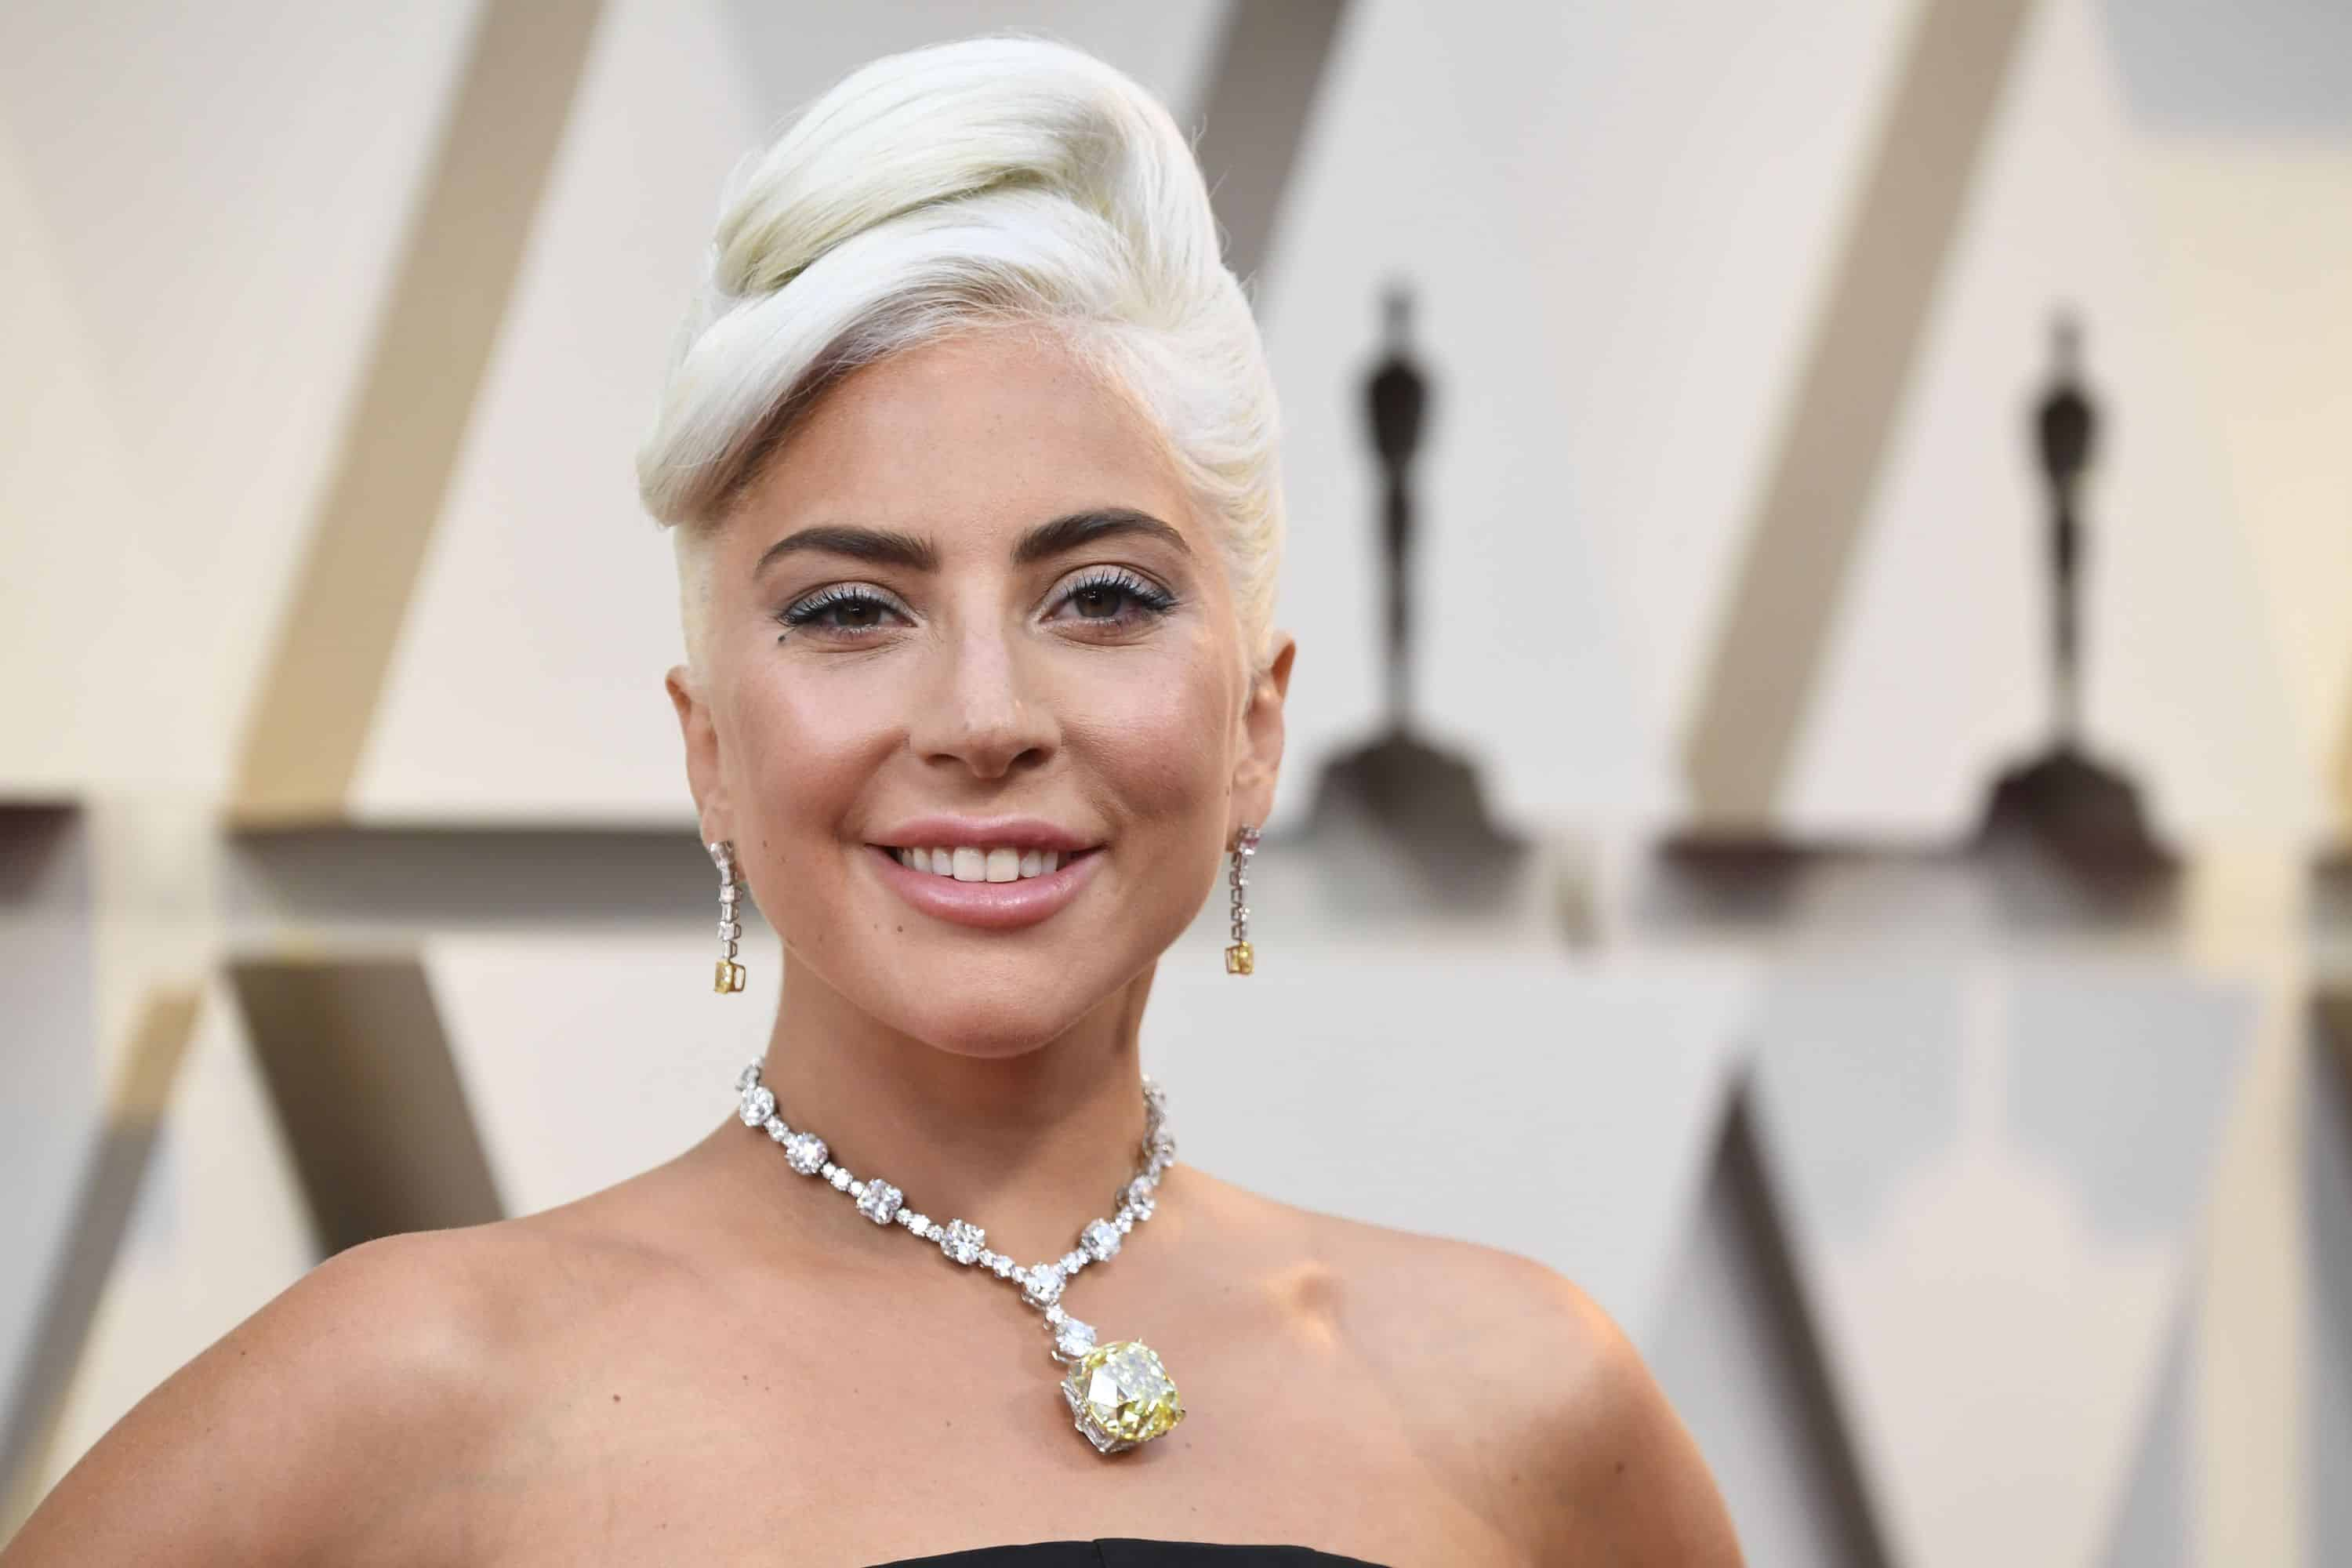 Lady Gaga and her Born This Way Foundation have teamed up with the Donors Choose organization to help fund 162 classrooms in Gilroy, El Paso and Dayton